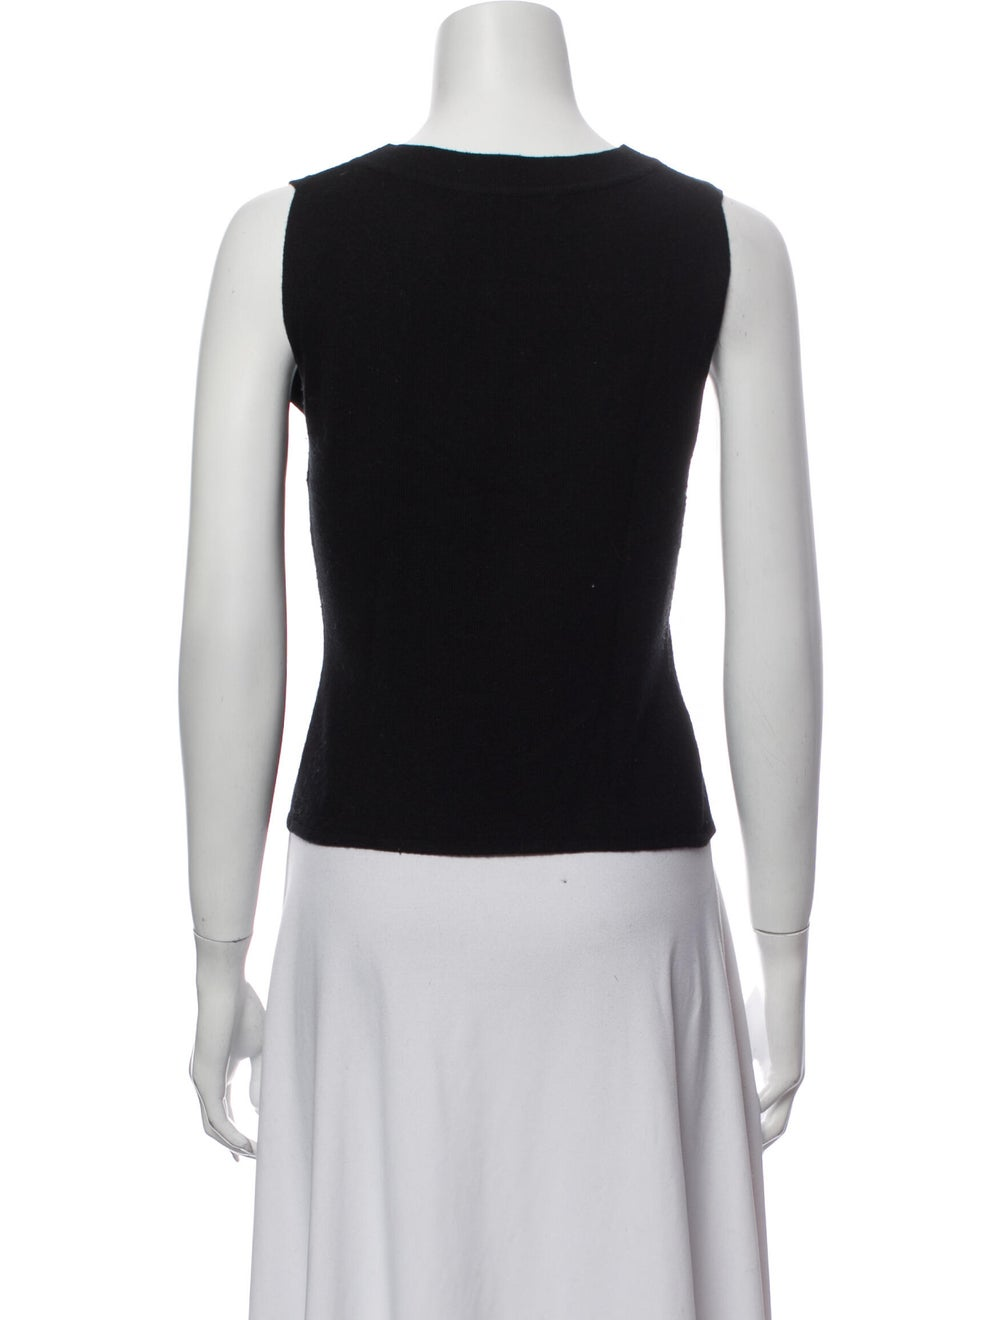 Valentino Crew Neck Sleeveless Top Black - image 3